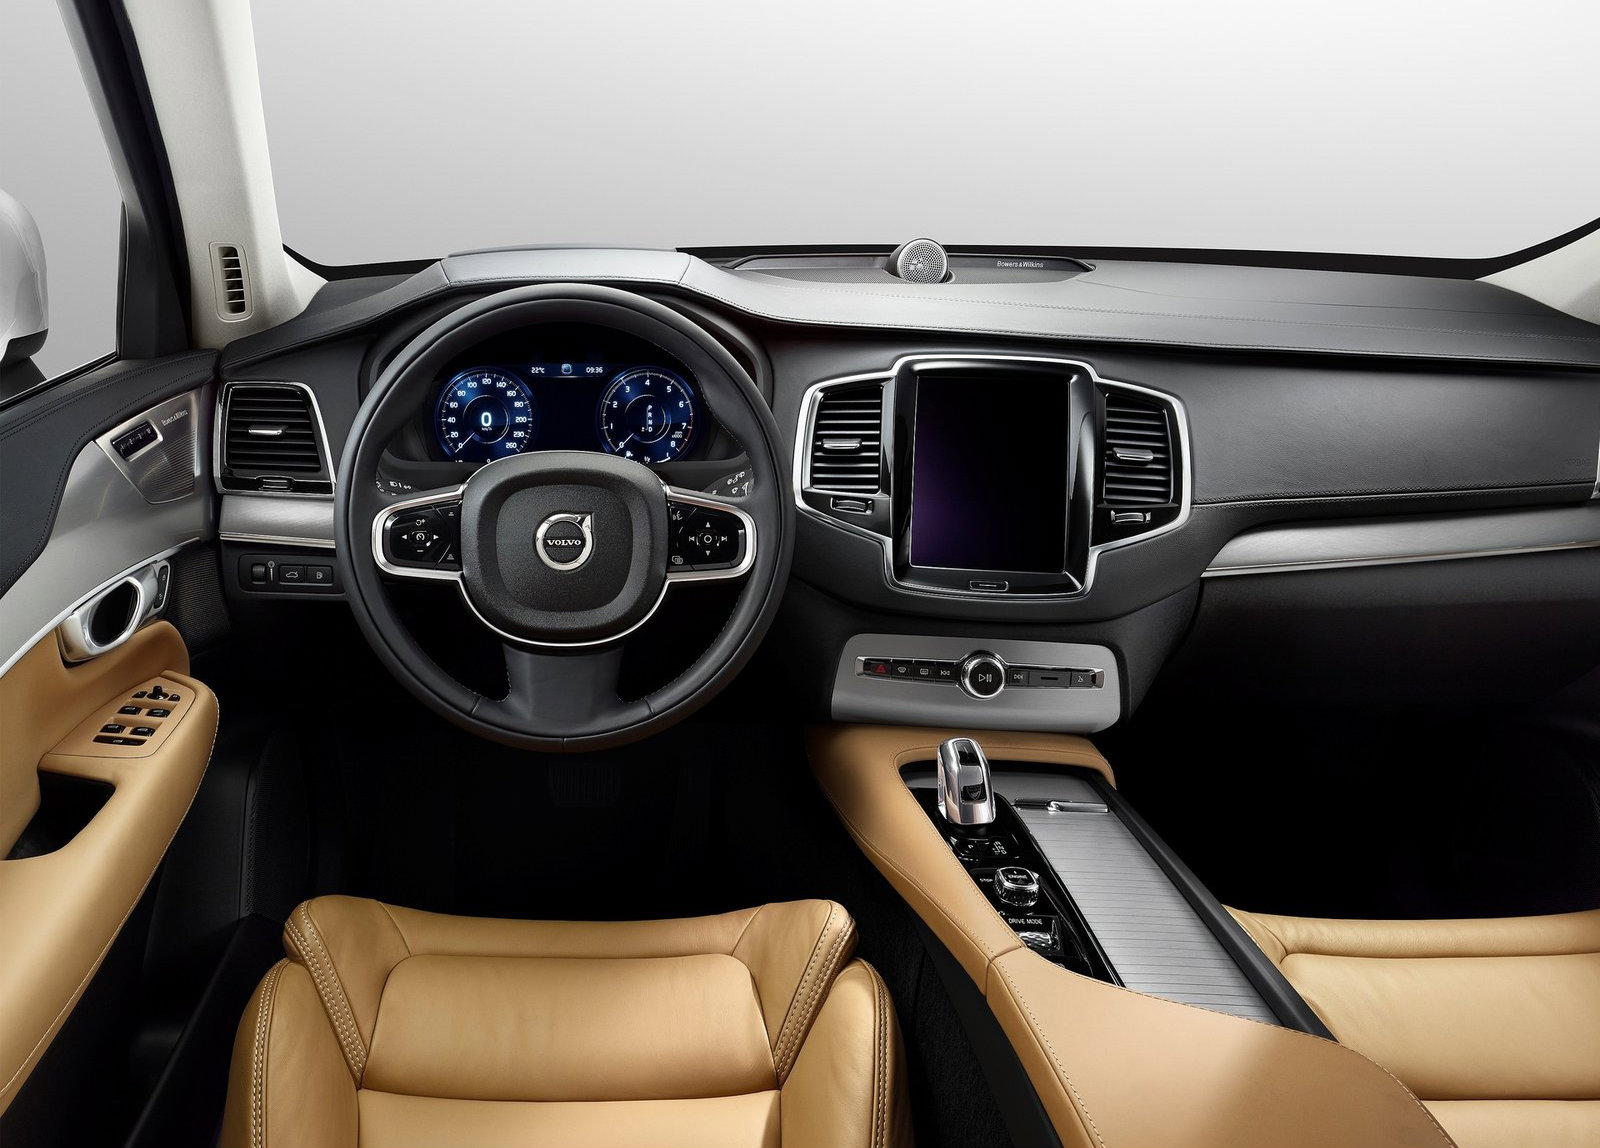 2015 Volvo XC90 Price List for Europe Announced, It Starts ...